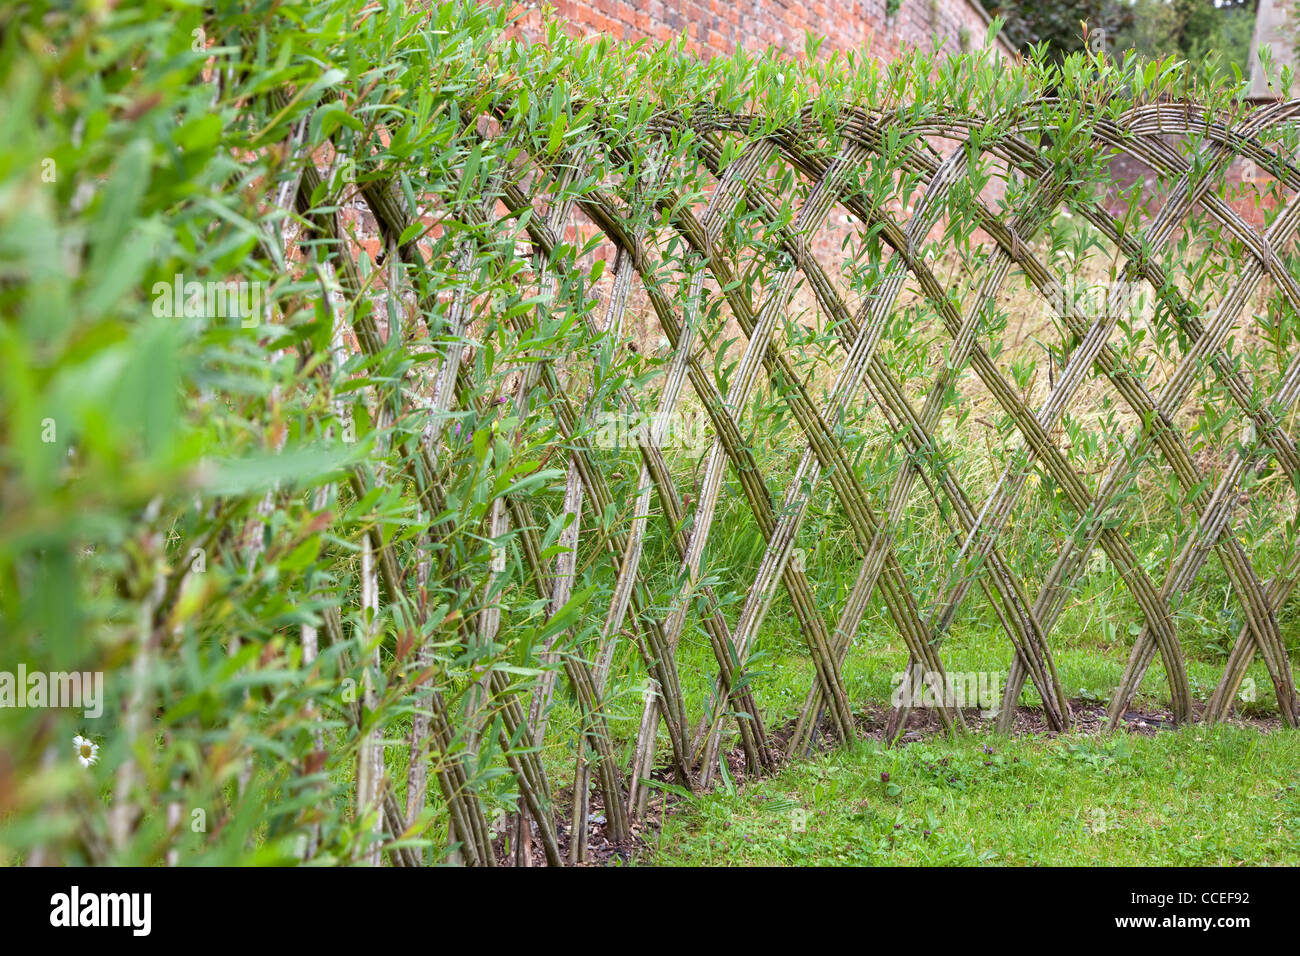 Live Willow Woven Screen Fencing Or Fedge England UK Stock Photo Royalty F